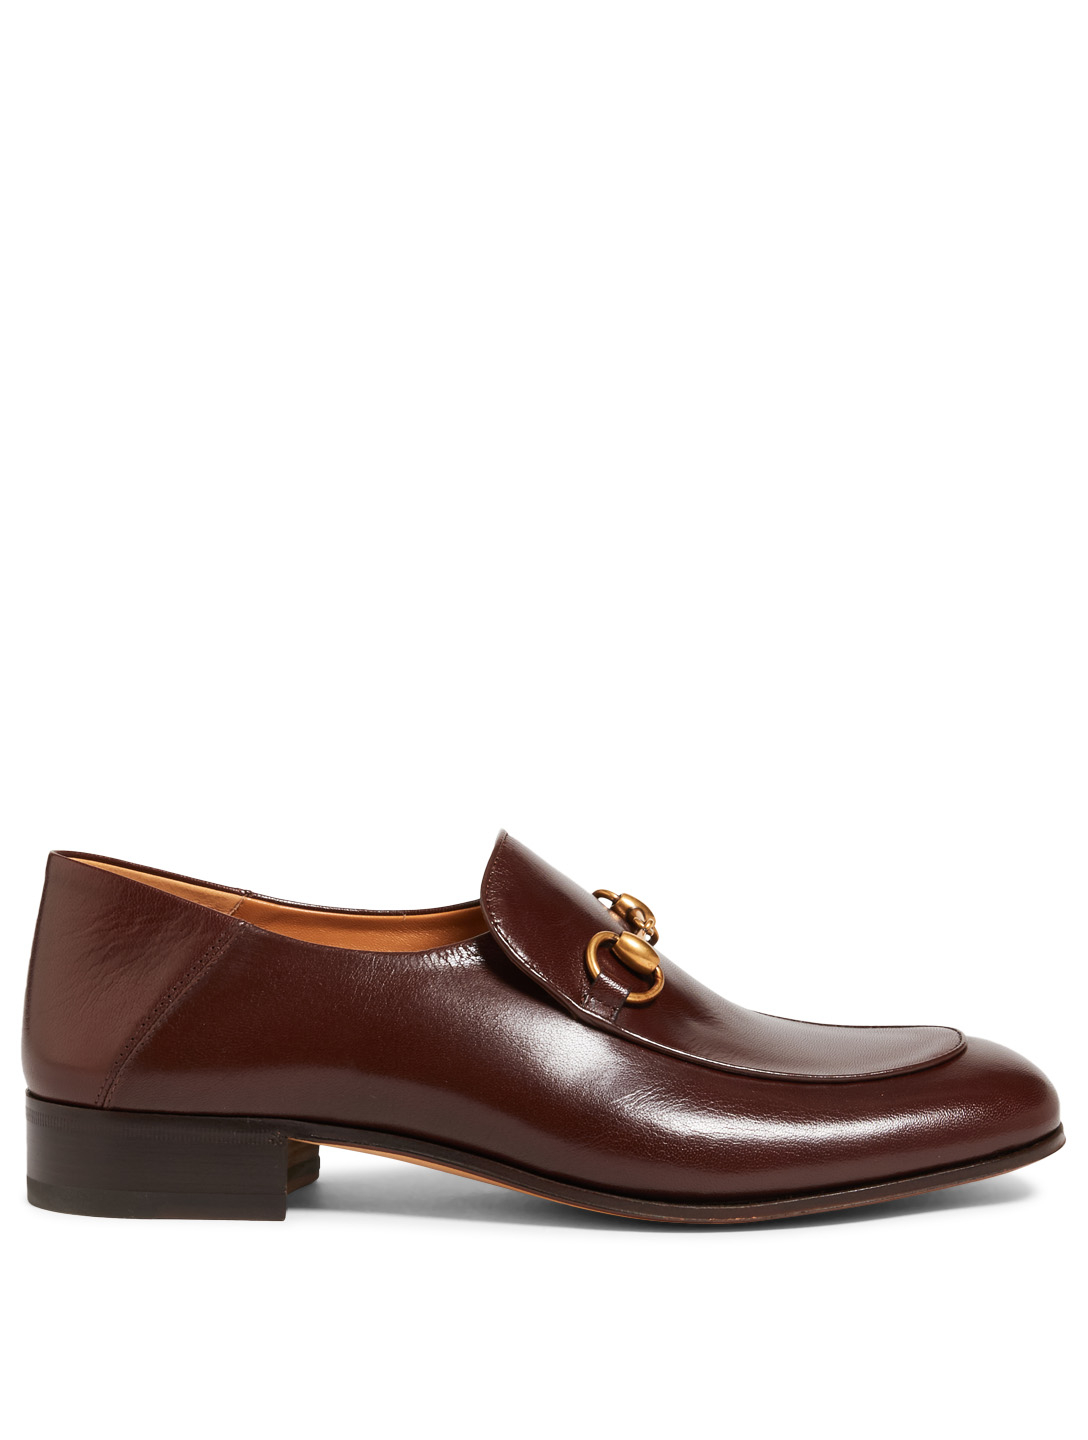 GUCCI Mister Leather Loafers Men's Brown